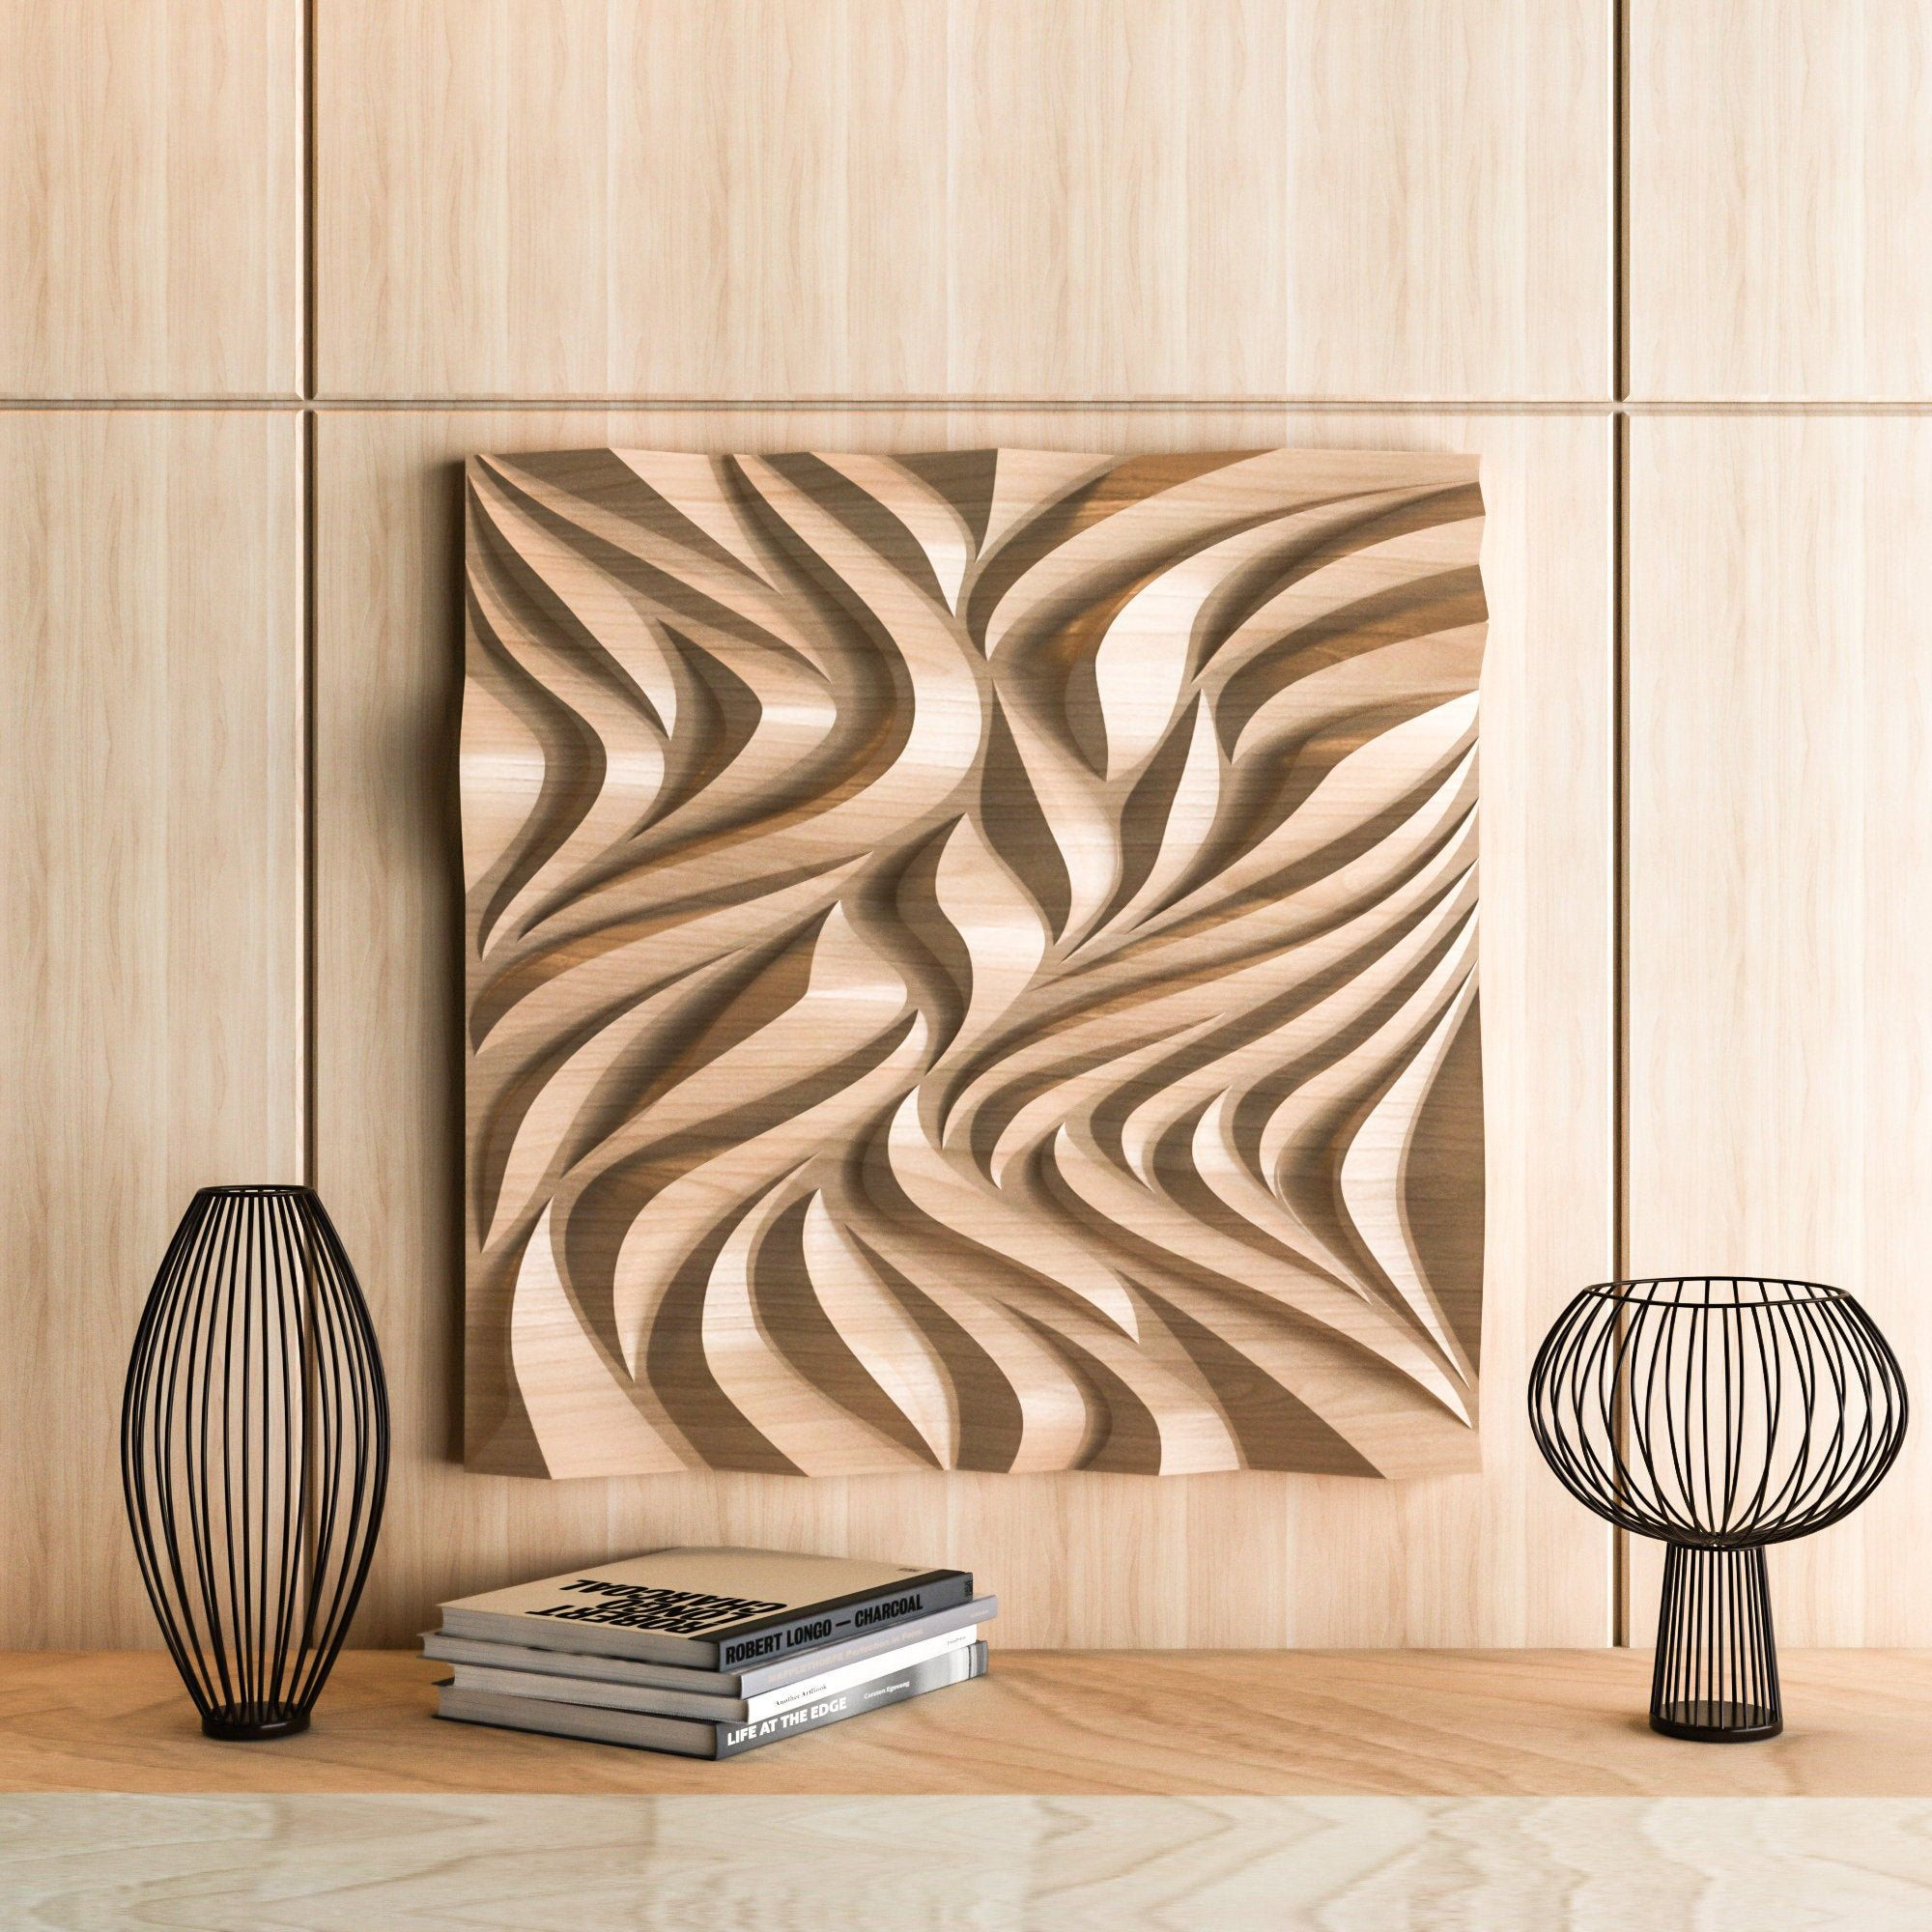 Cnc Files For Wood 3d Model Of Wall Panels Stl Object Cnc Etsy Diy Cnc Router Cnc Wood Carving Cnc Router Projects